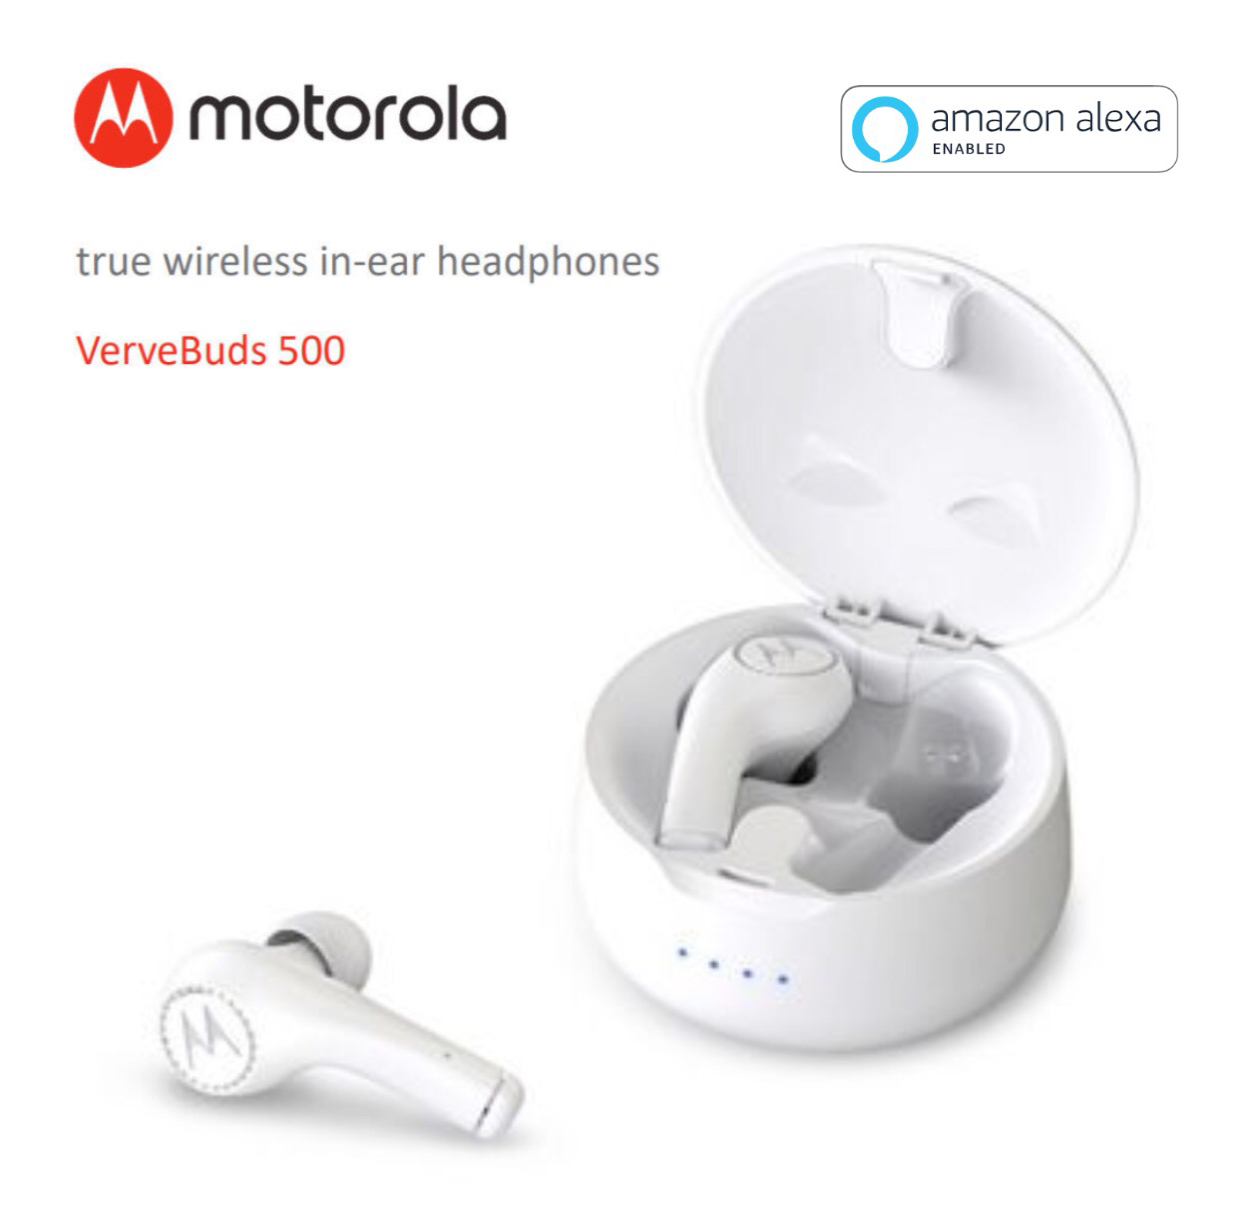 Motorola VerveBuds 500 True Wireless in-ear Headphones with Amazon Alexa